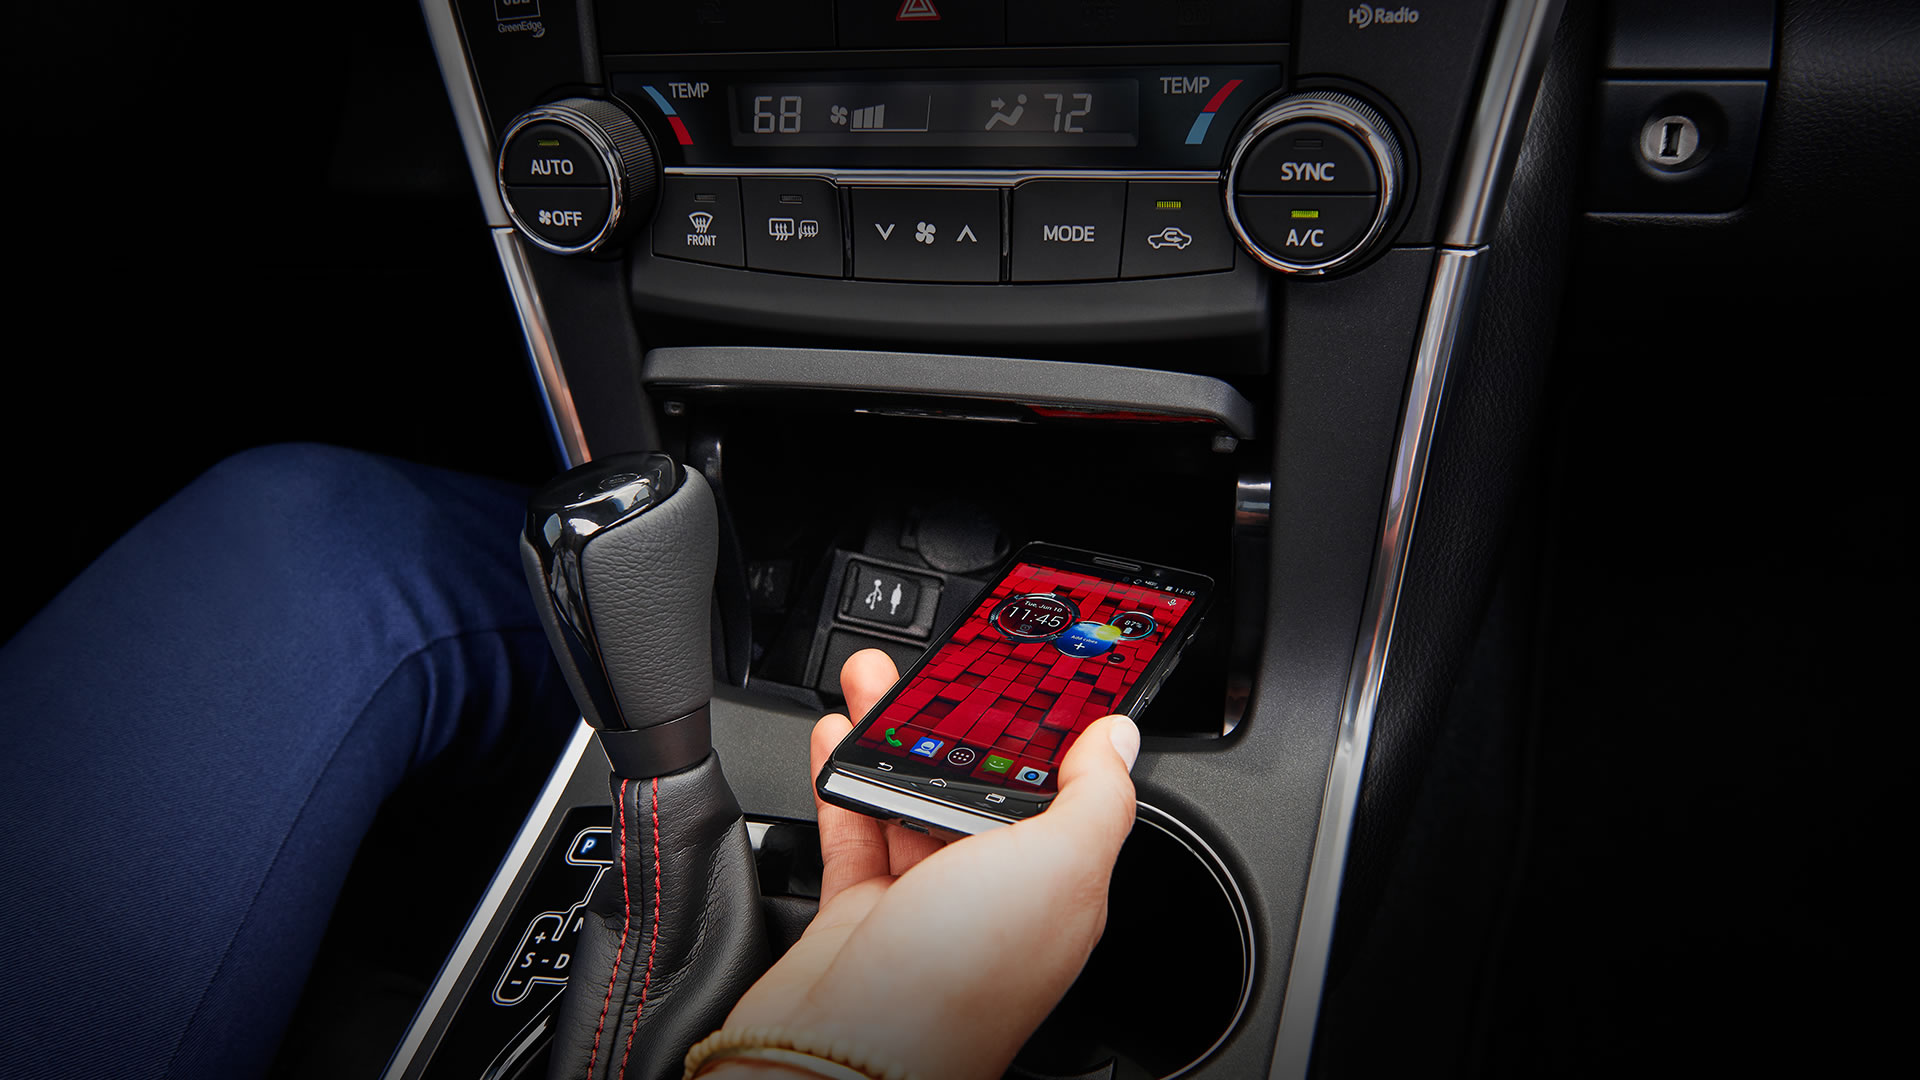 Infotainment At Your Fingertips